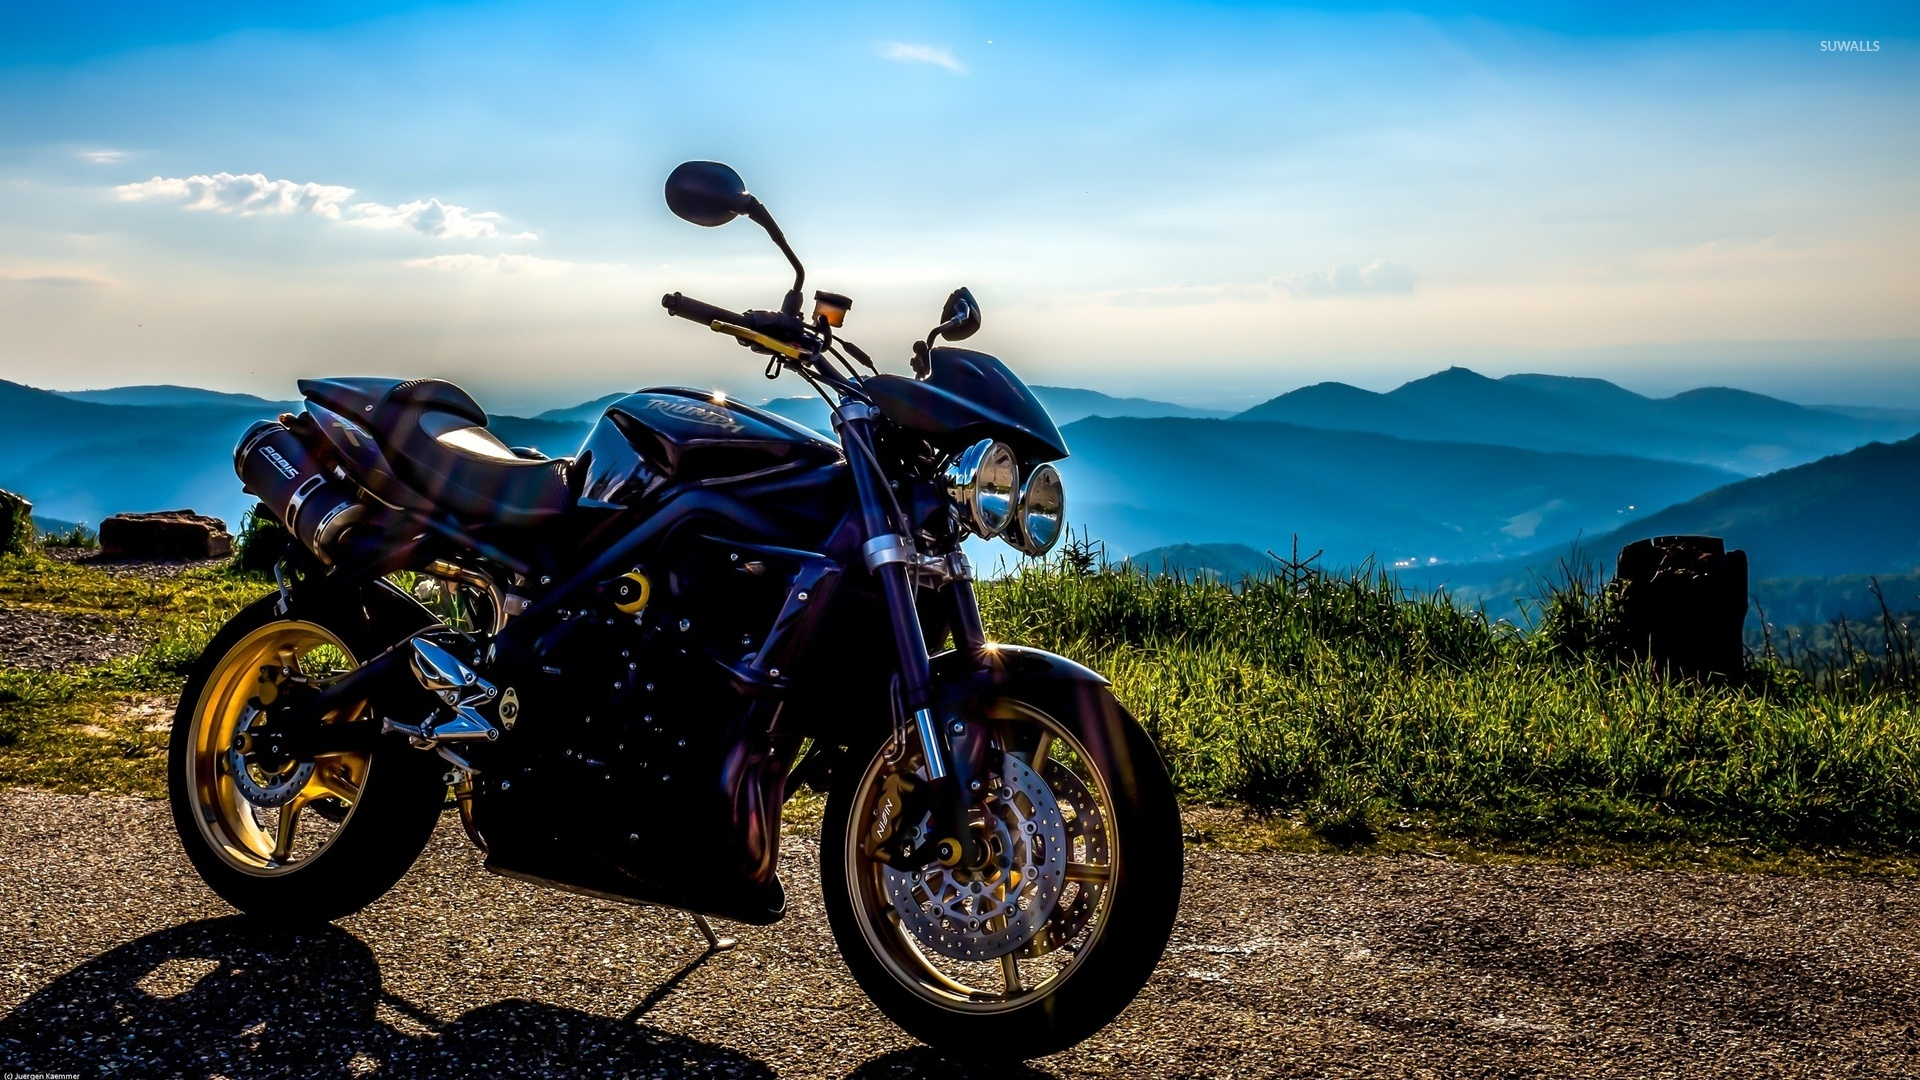 Triumph wallpaper - Motorcycle wallpapers - #32646